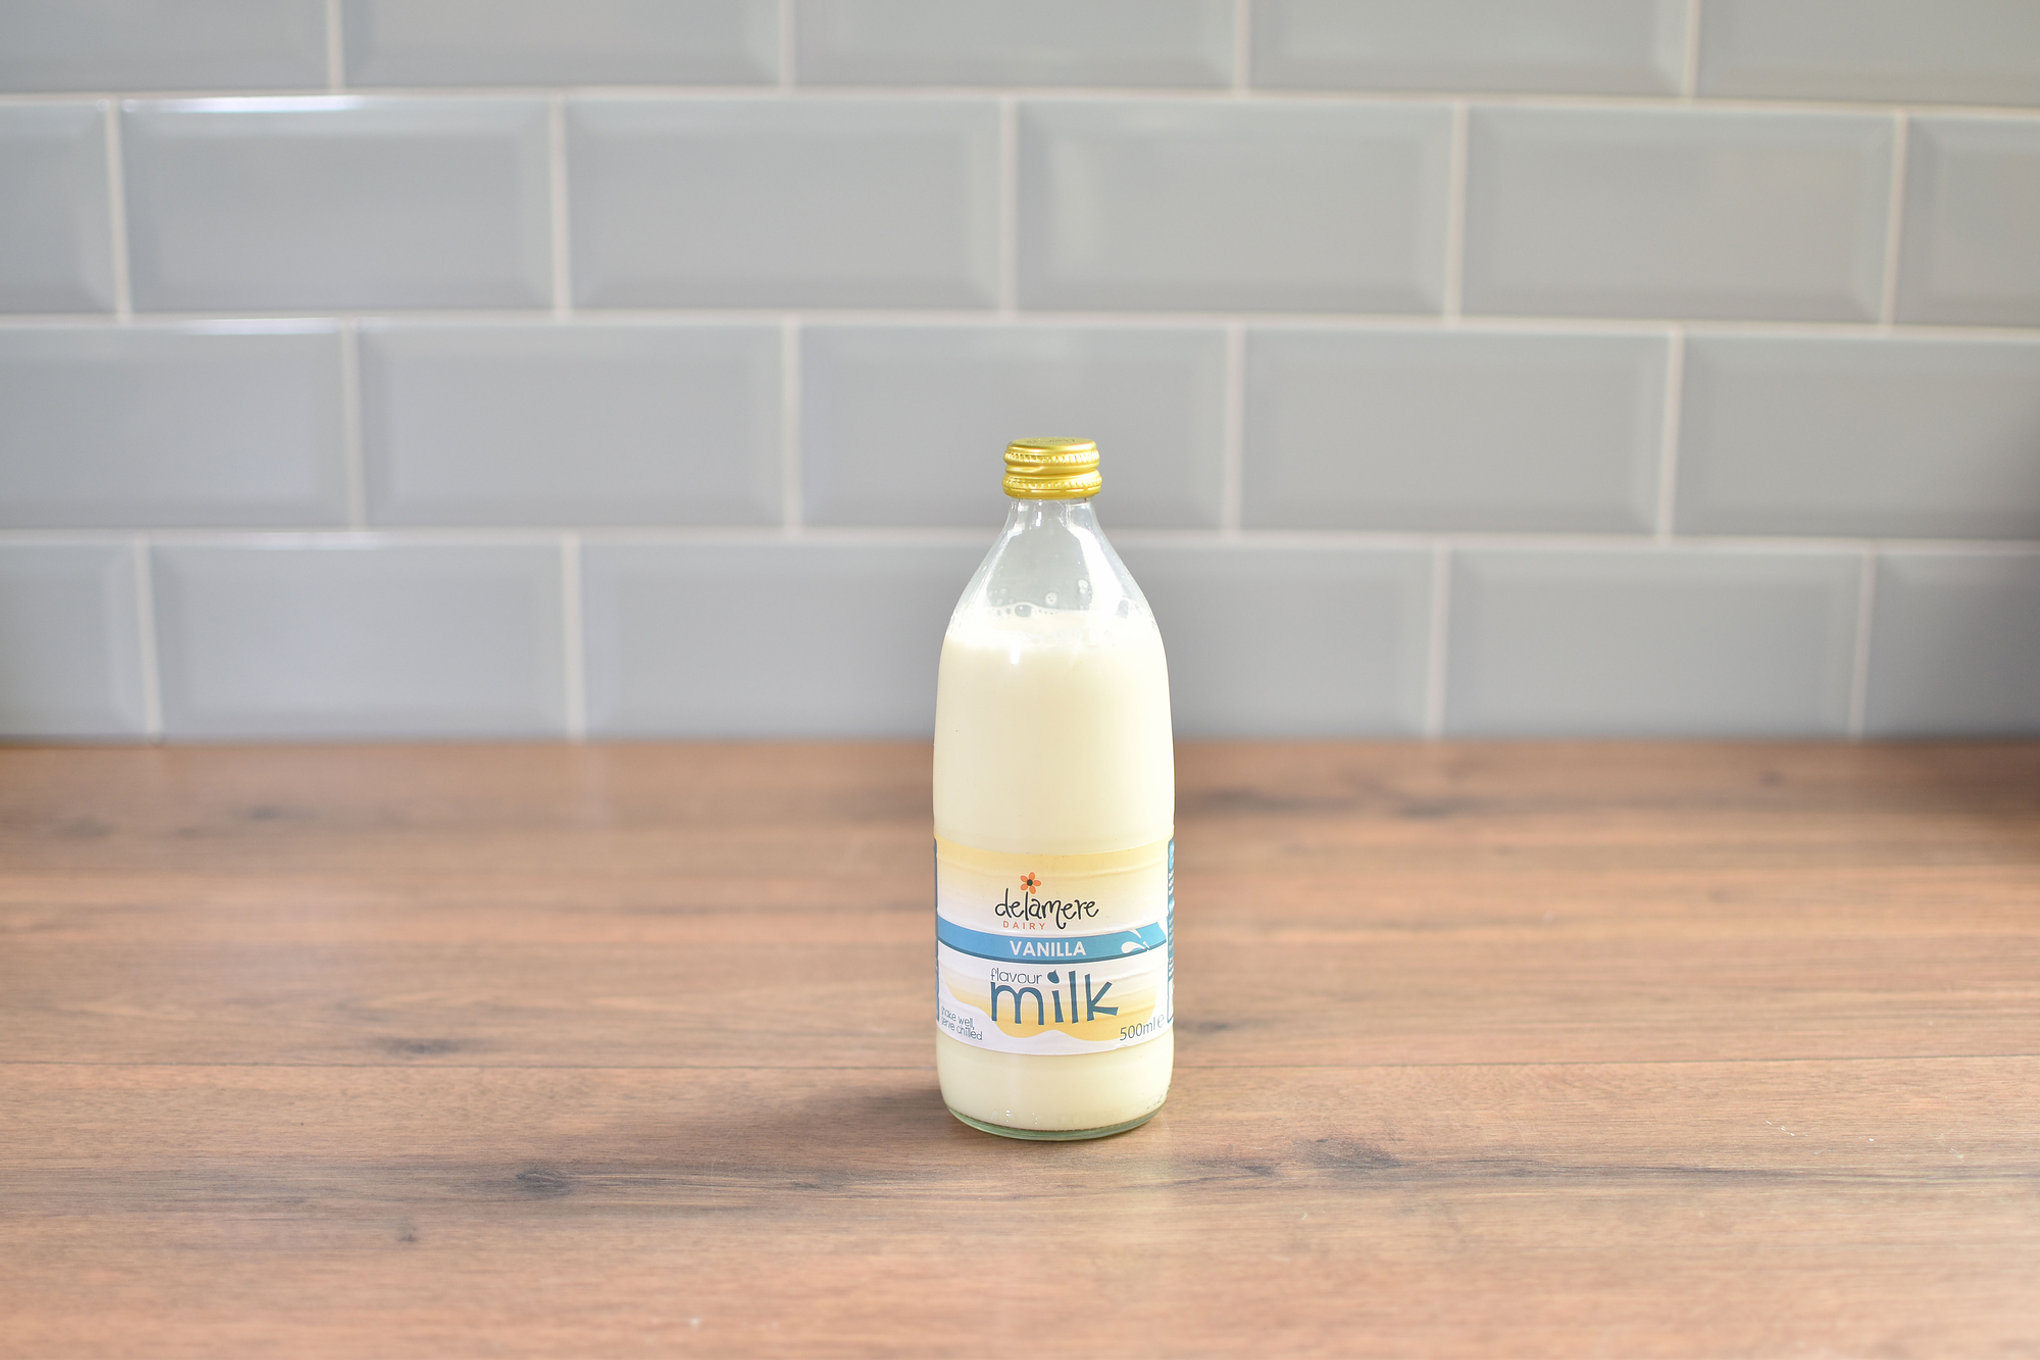 Delamere Vanilla Milk - 500ml Glass Bottle